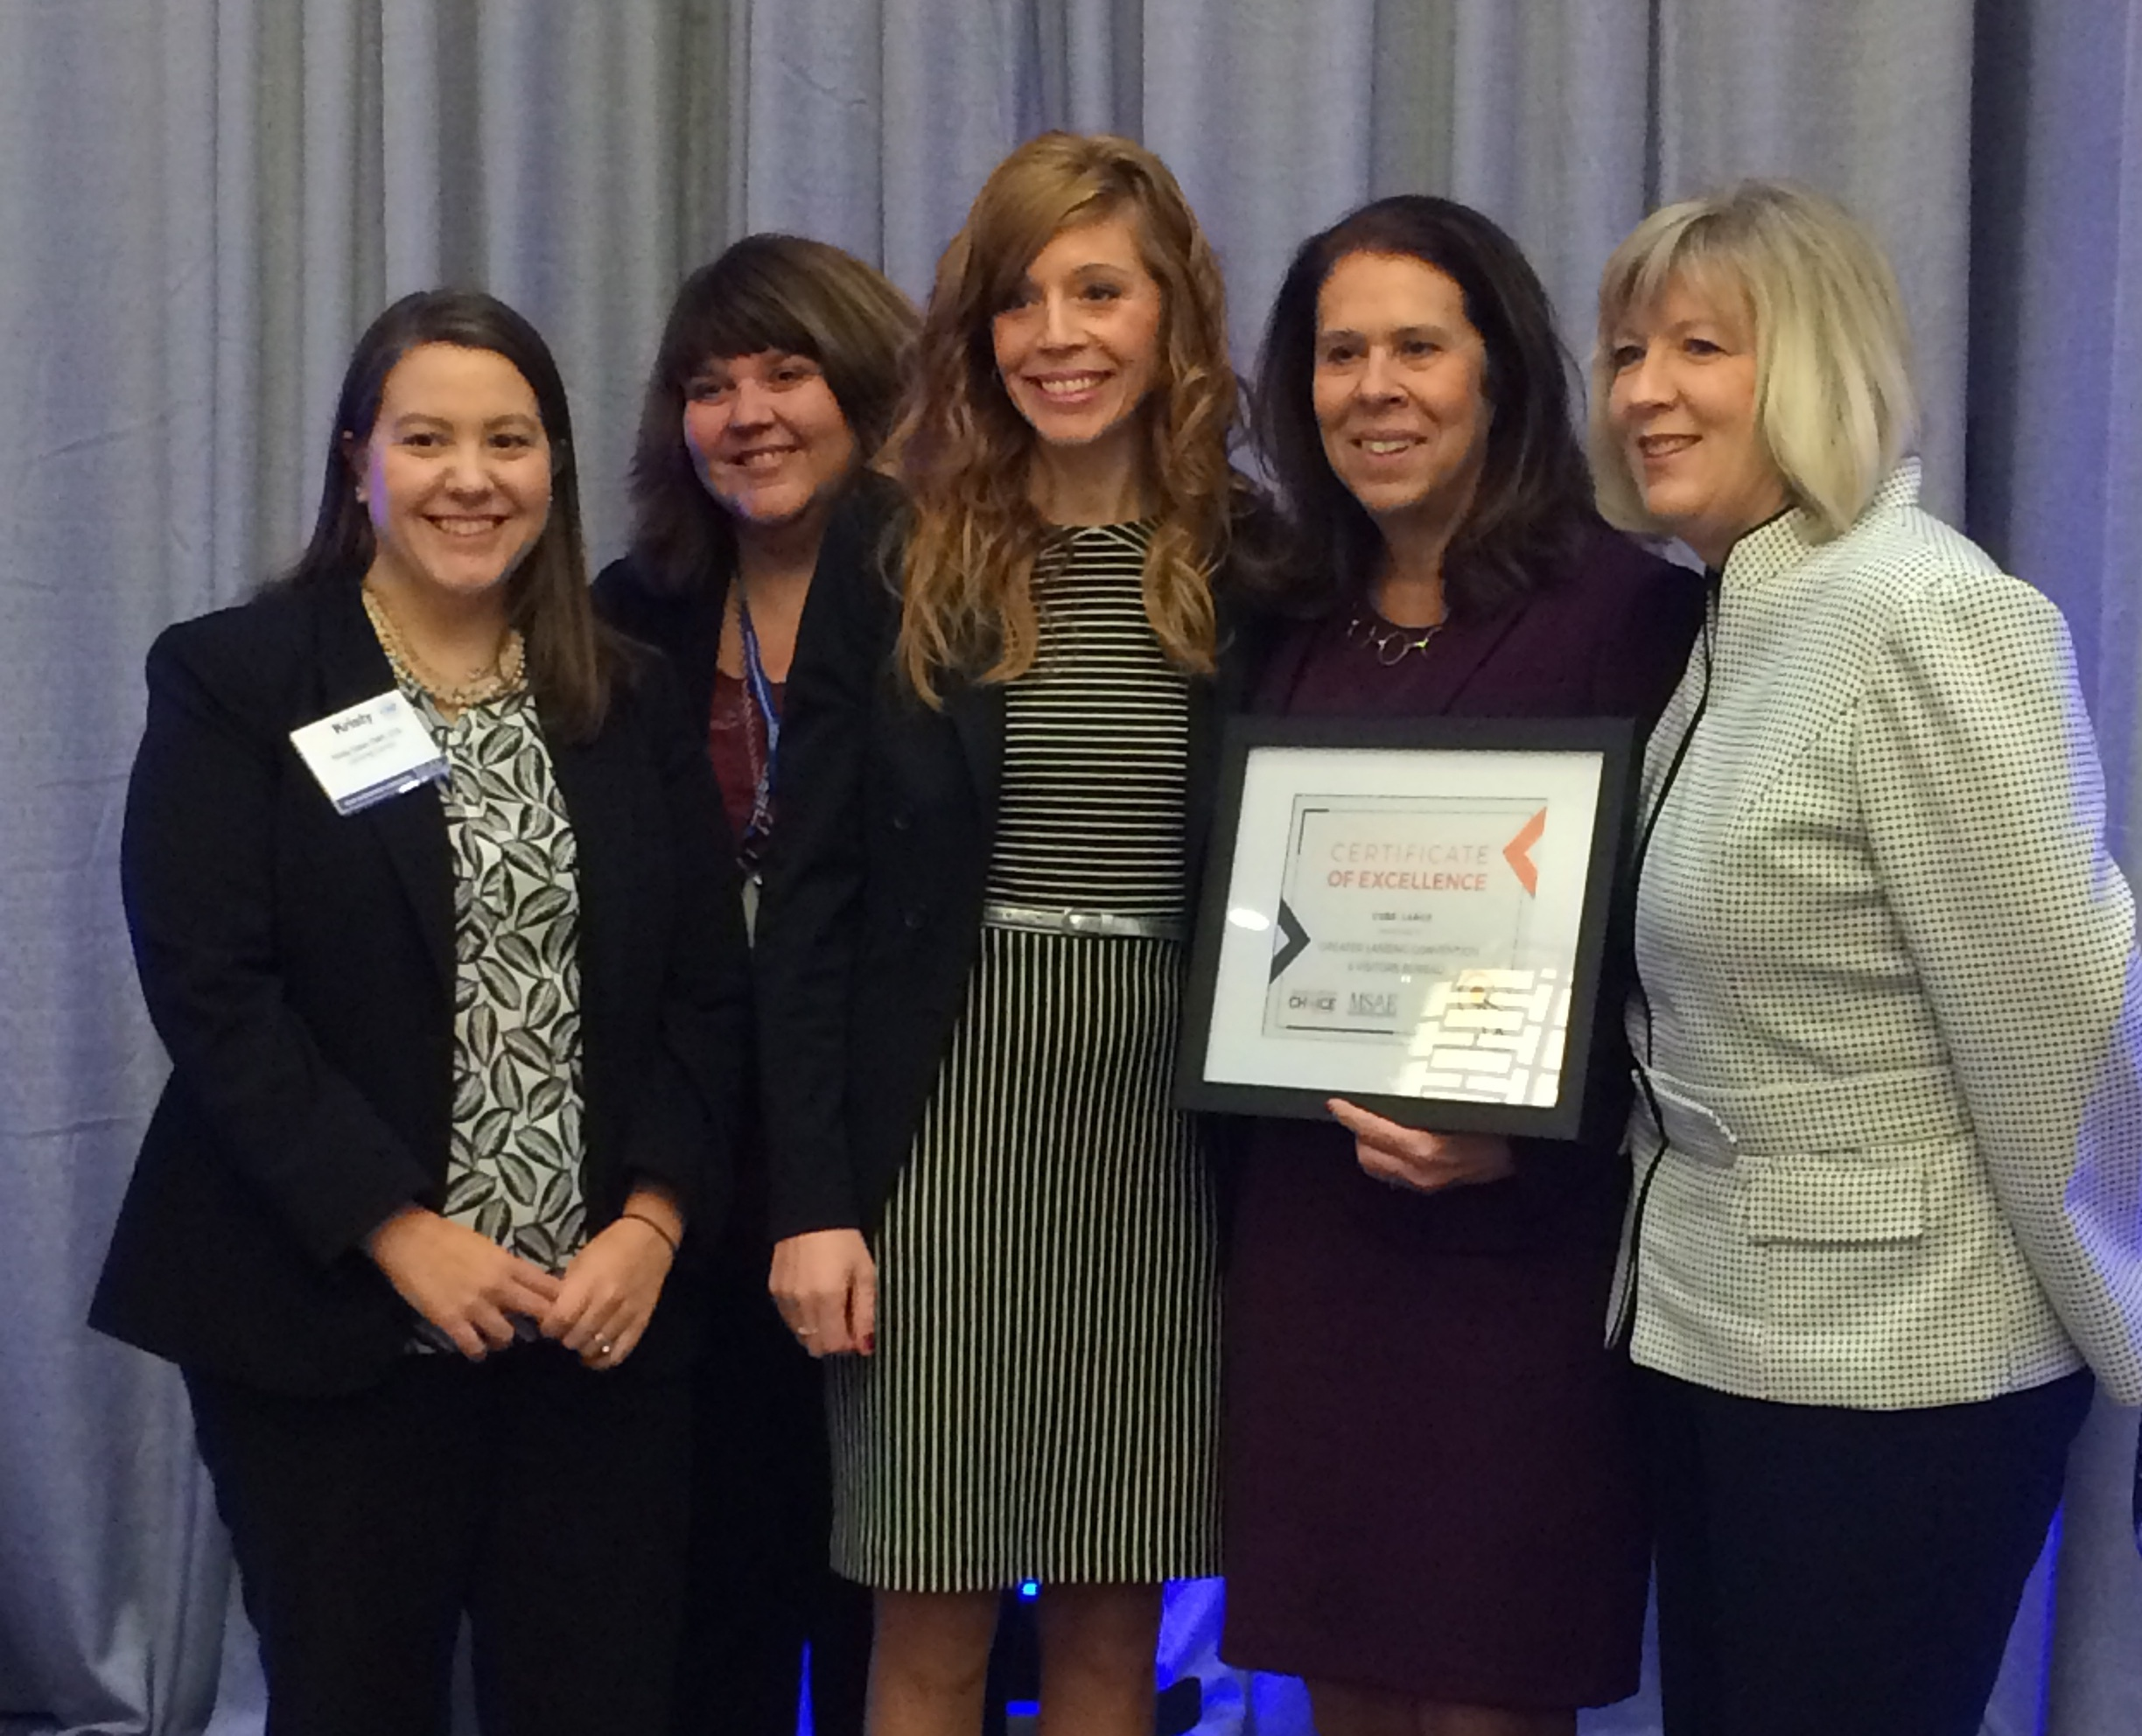 Staff of the Greater Lansing CVB join Cheryl Ronk, Executive Director of the MSAE, to receive an award for Best Large CVB, as voted by MSAE Members Left to right; Kristy Doak, Brenda Haight, Amanda Toy, Cheryl Ronk and Mary Chris Hotchkiss